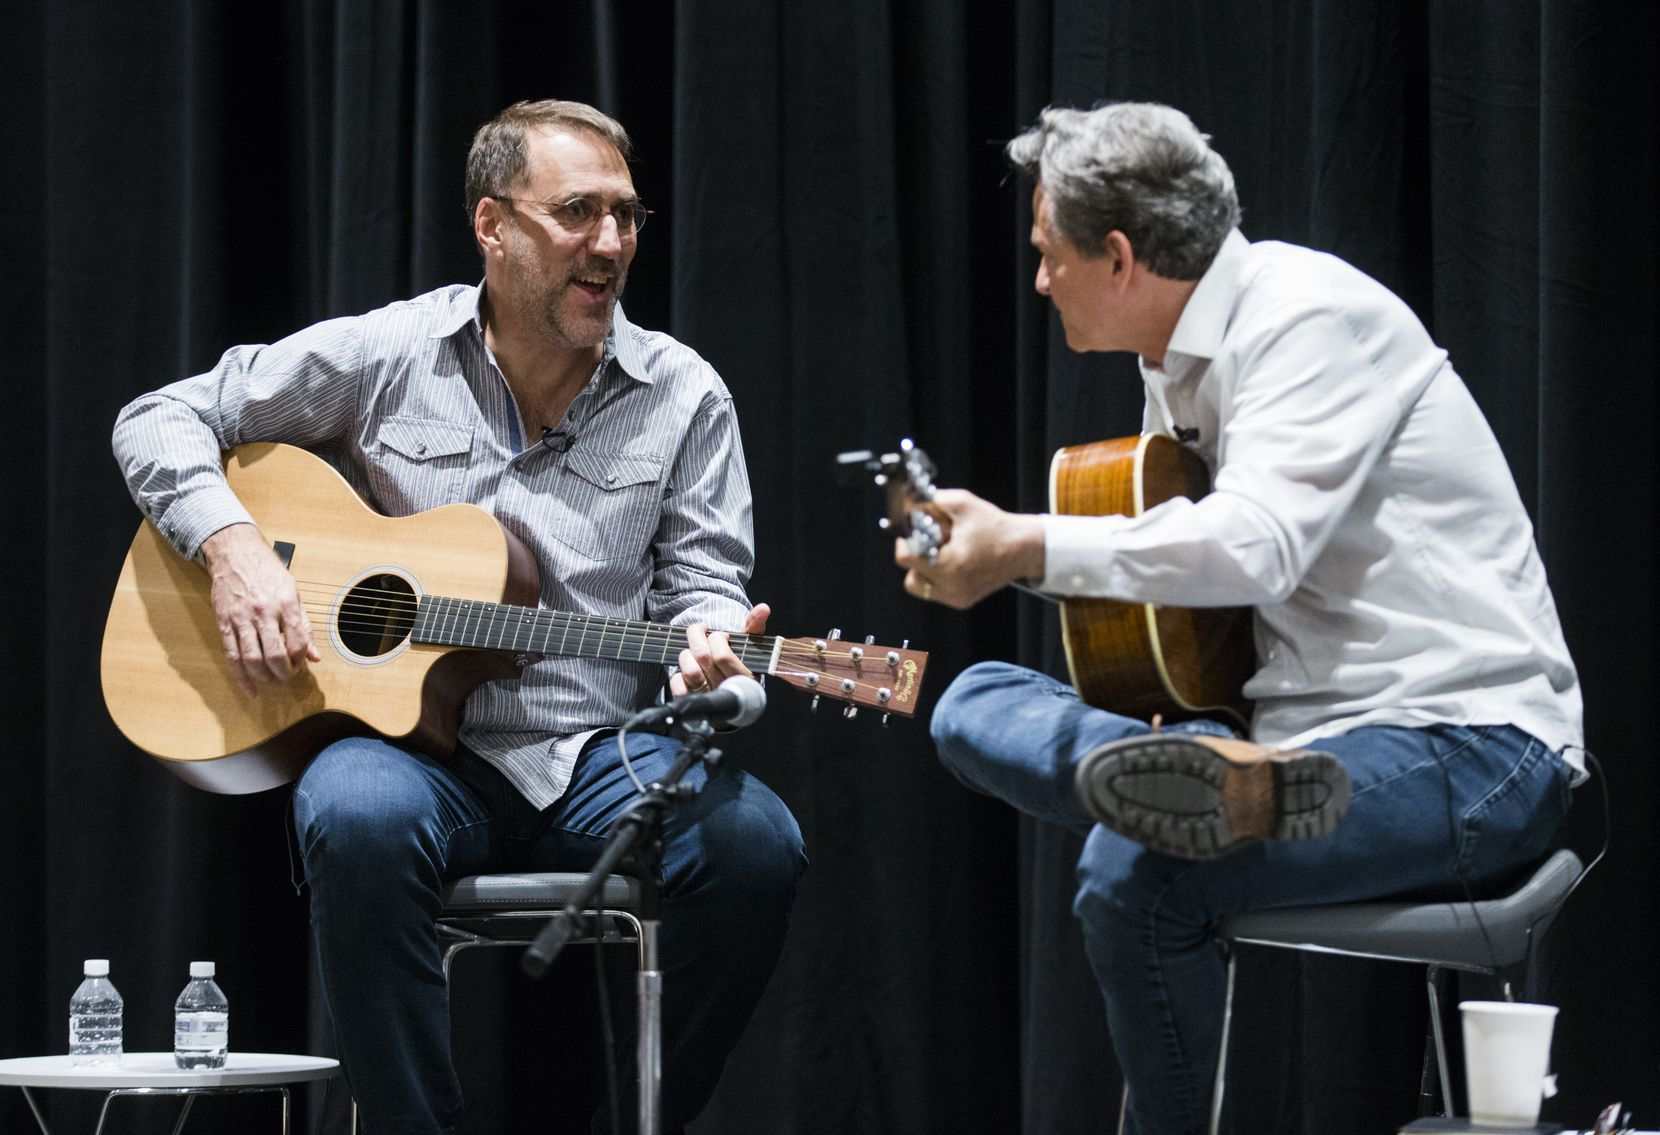 Songwriter Billy Crockett (right) and editor Mike Wilson entertained Dallas Morning News subscribers in a community engagement event last year in Dallas.